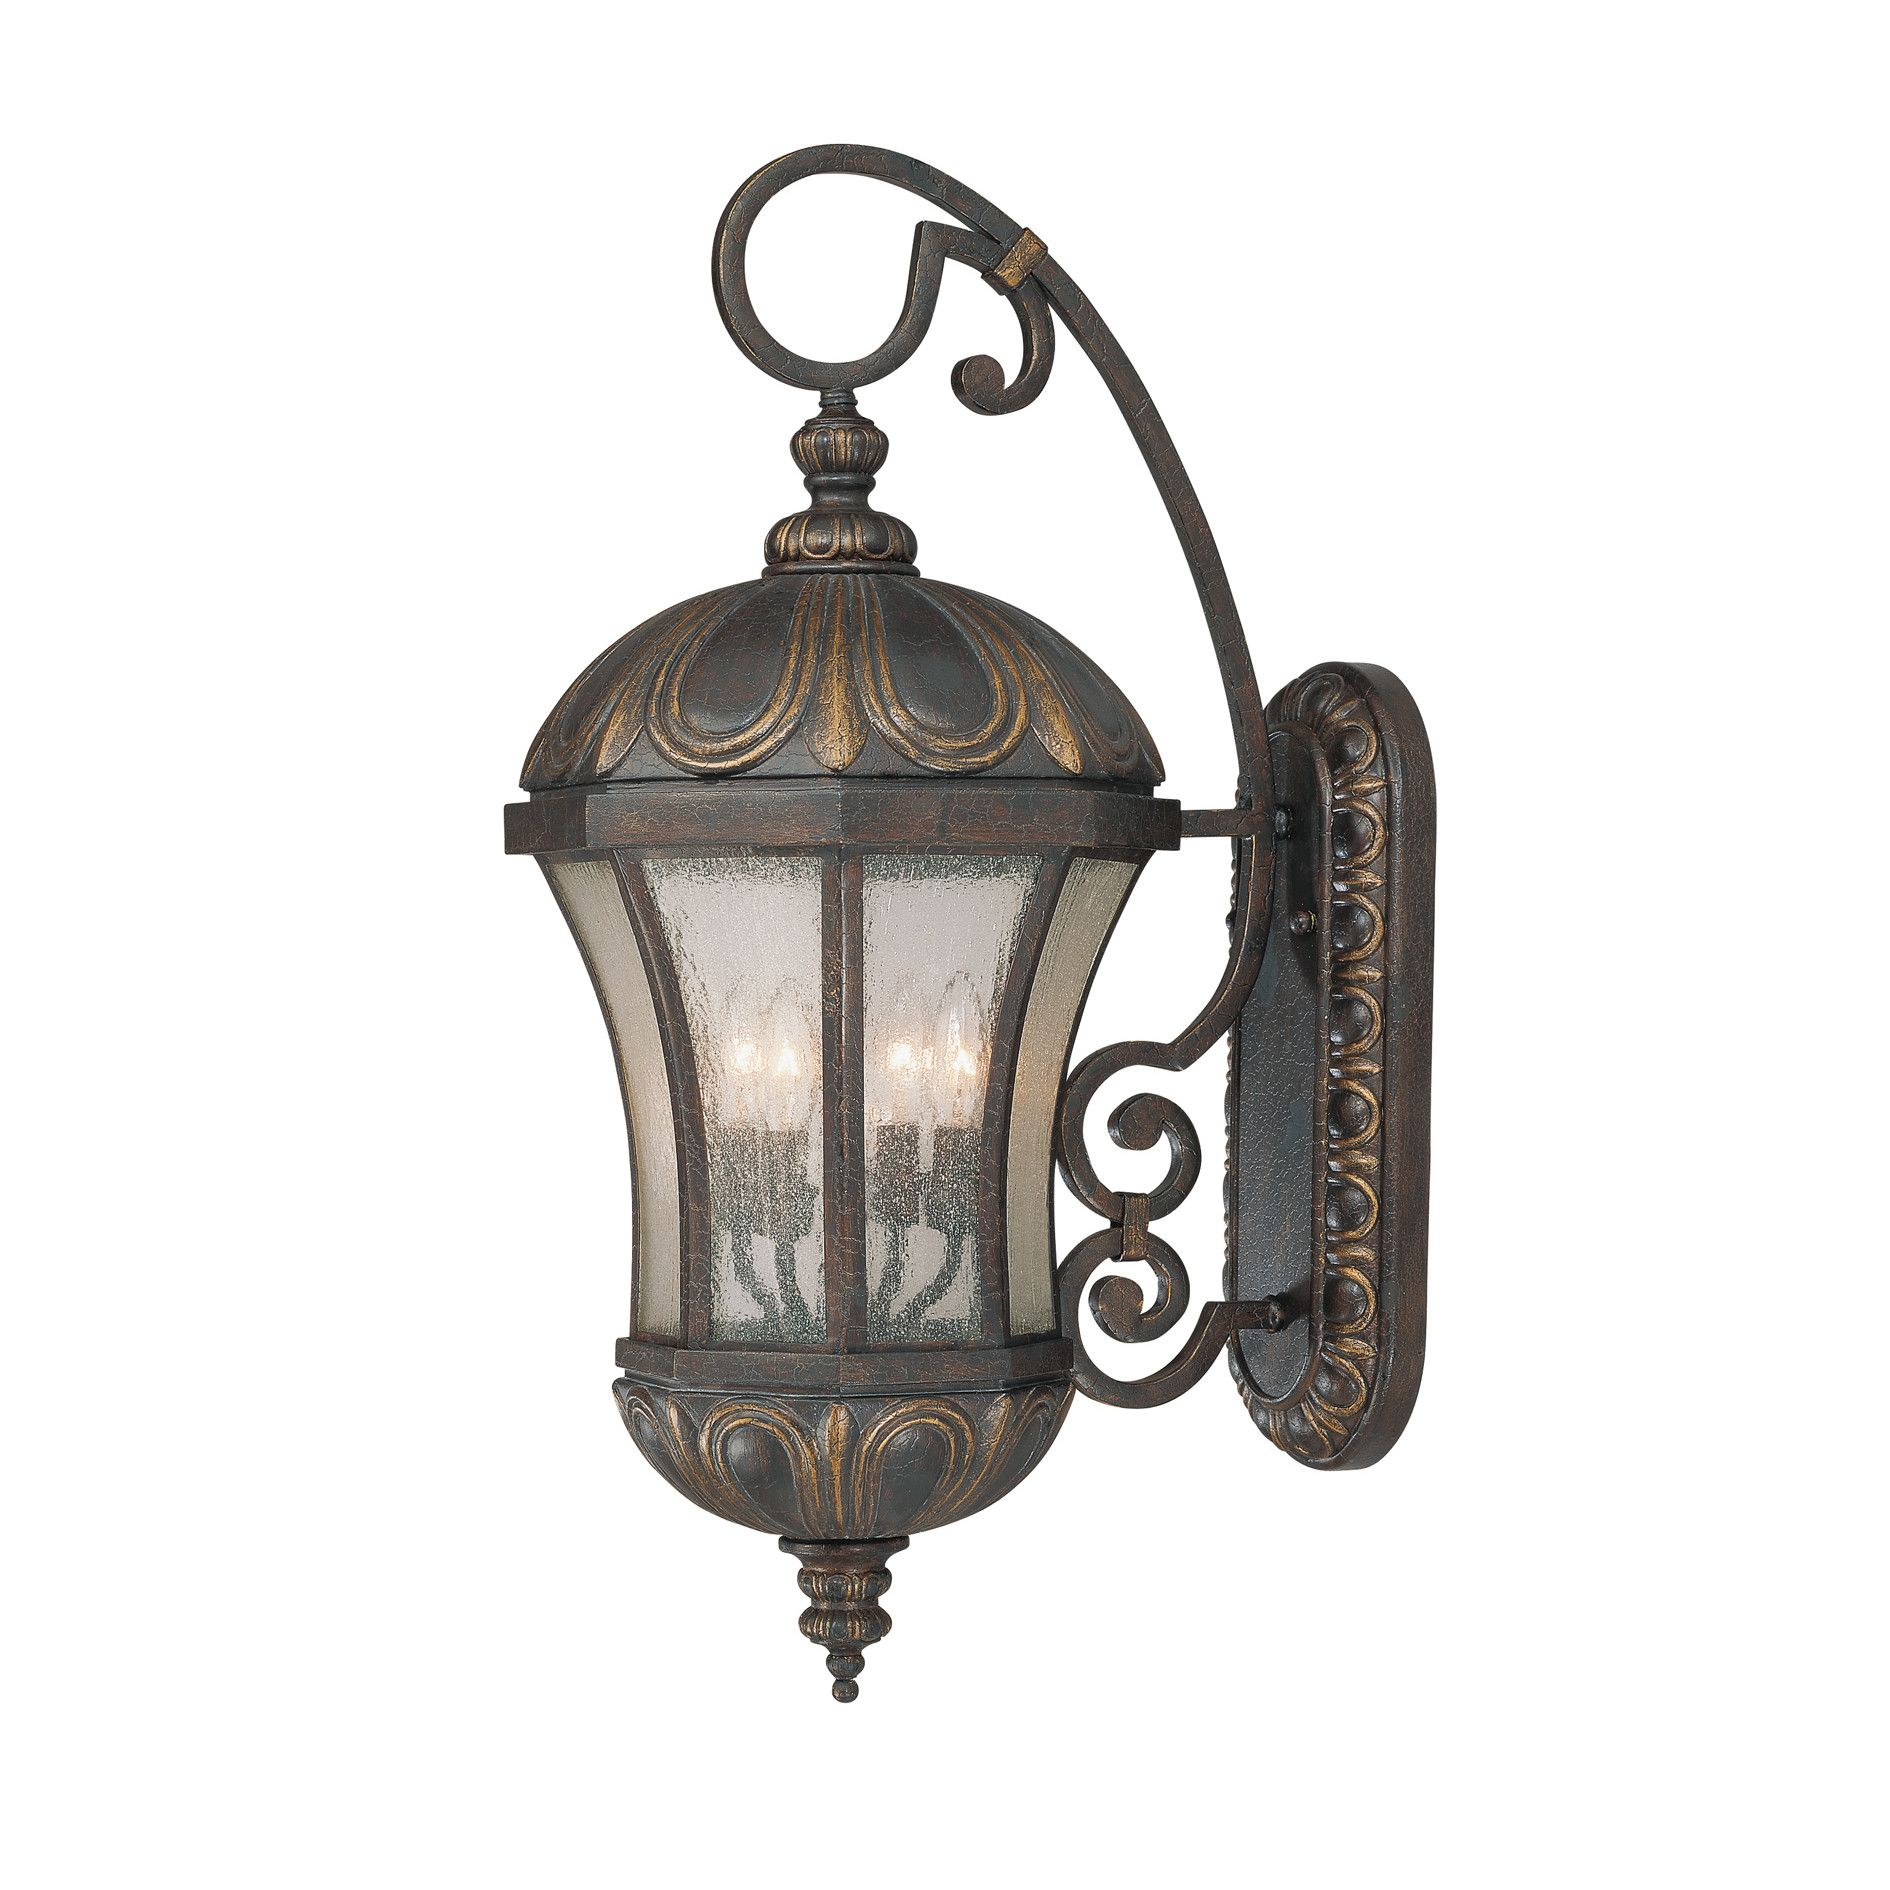 Savoy house ponce de leon light outdoor wall lantern